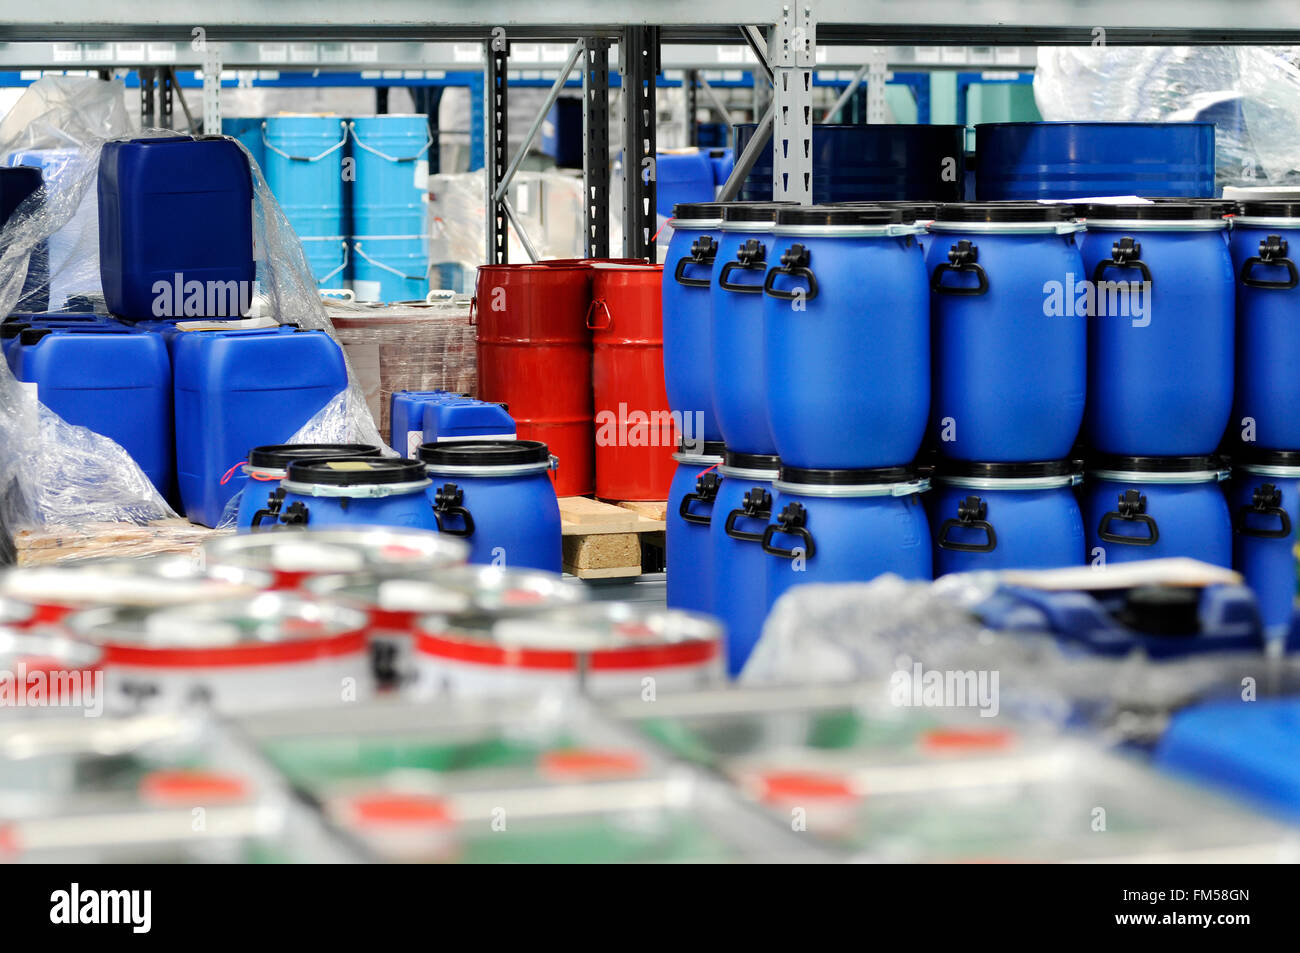 Colorful red metal and blue plastic barrels or drums stored in a warehouse - Stock Image